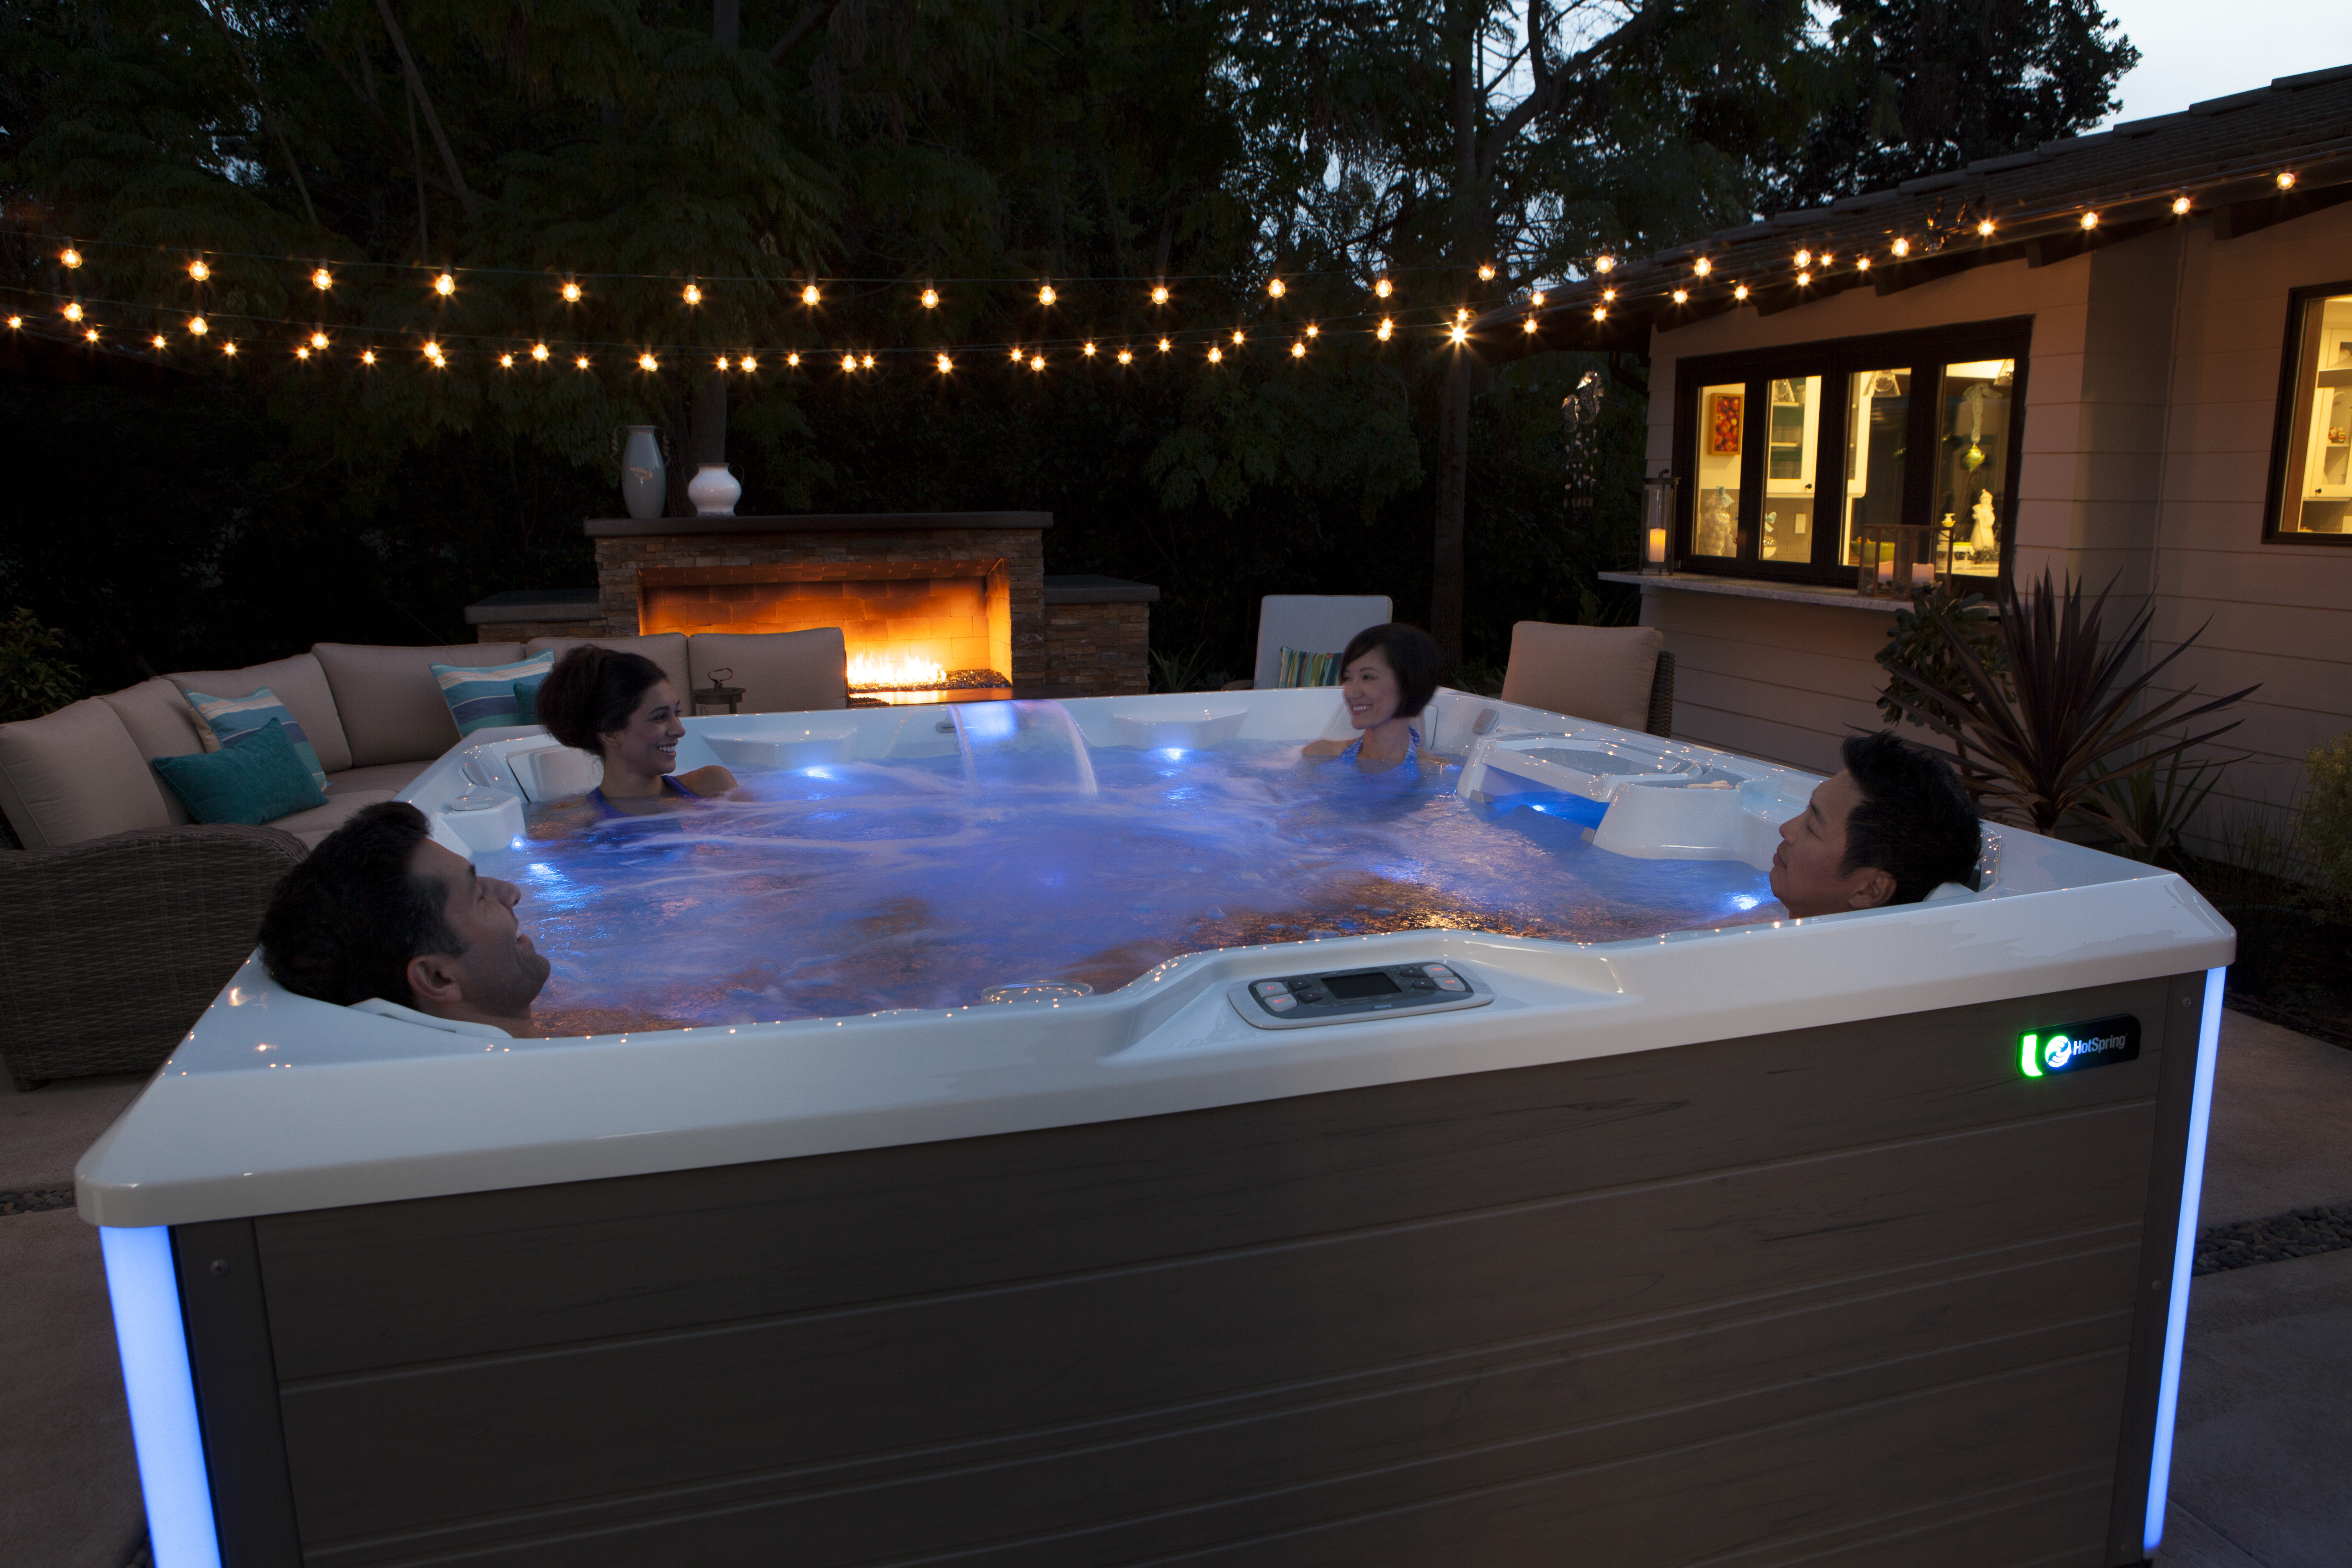 Buy Hot Tub >> What Is The Best Time Of Year To Buy A Hot Tub Maximum Comfort